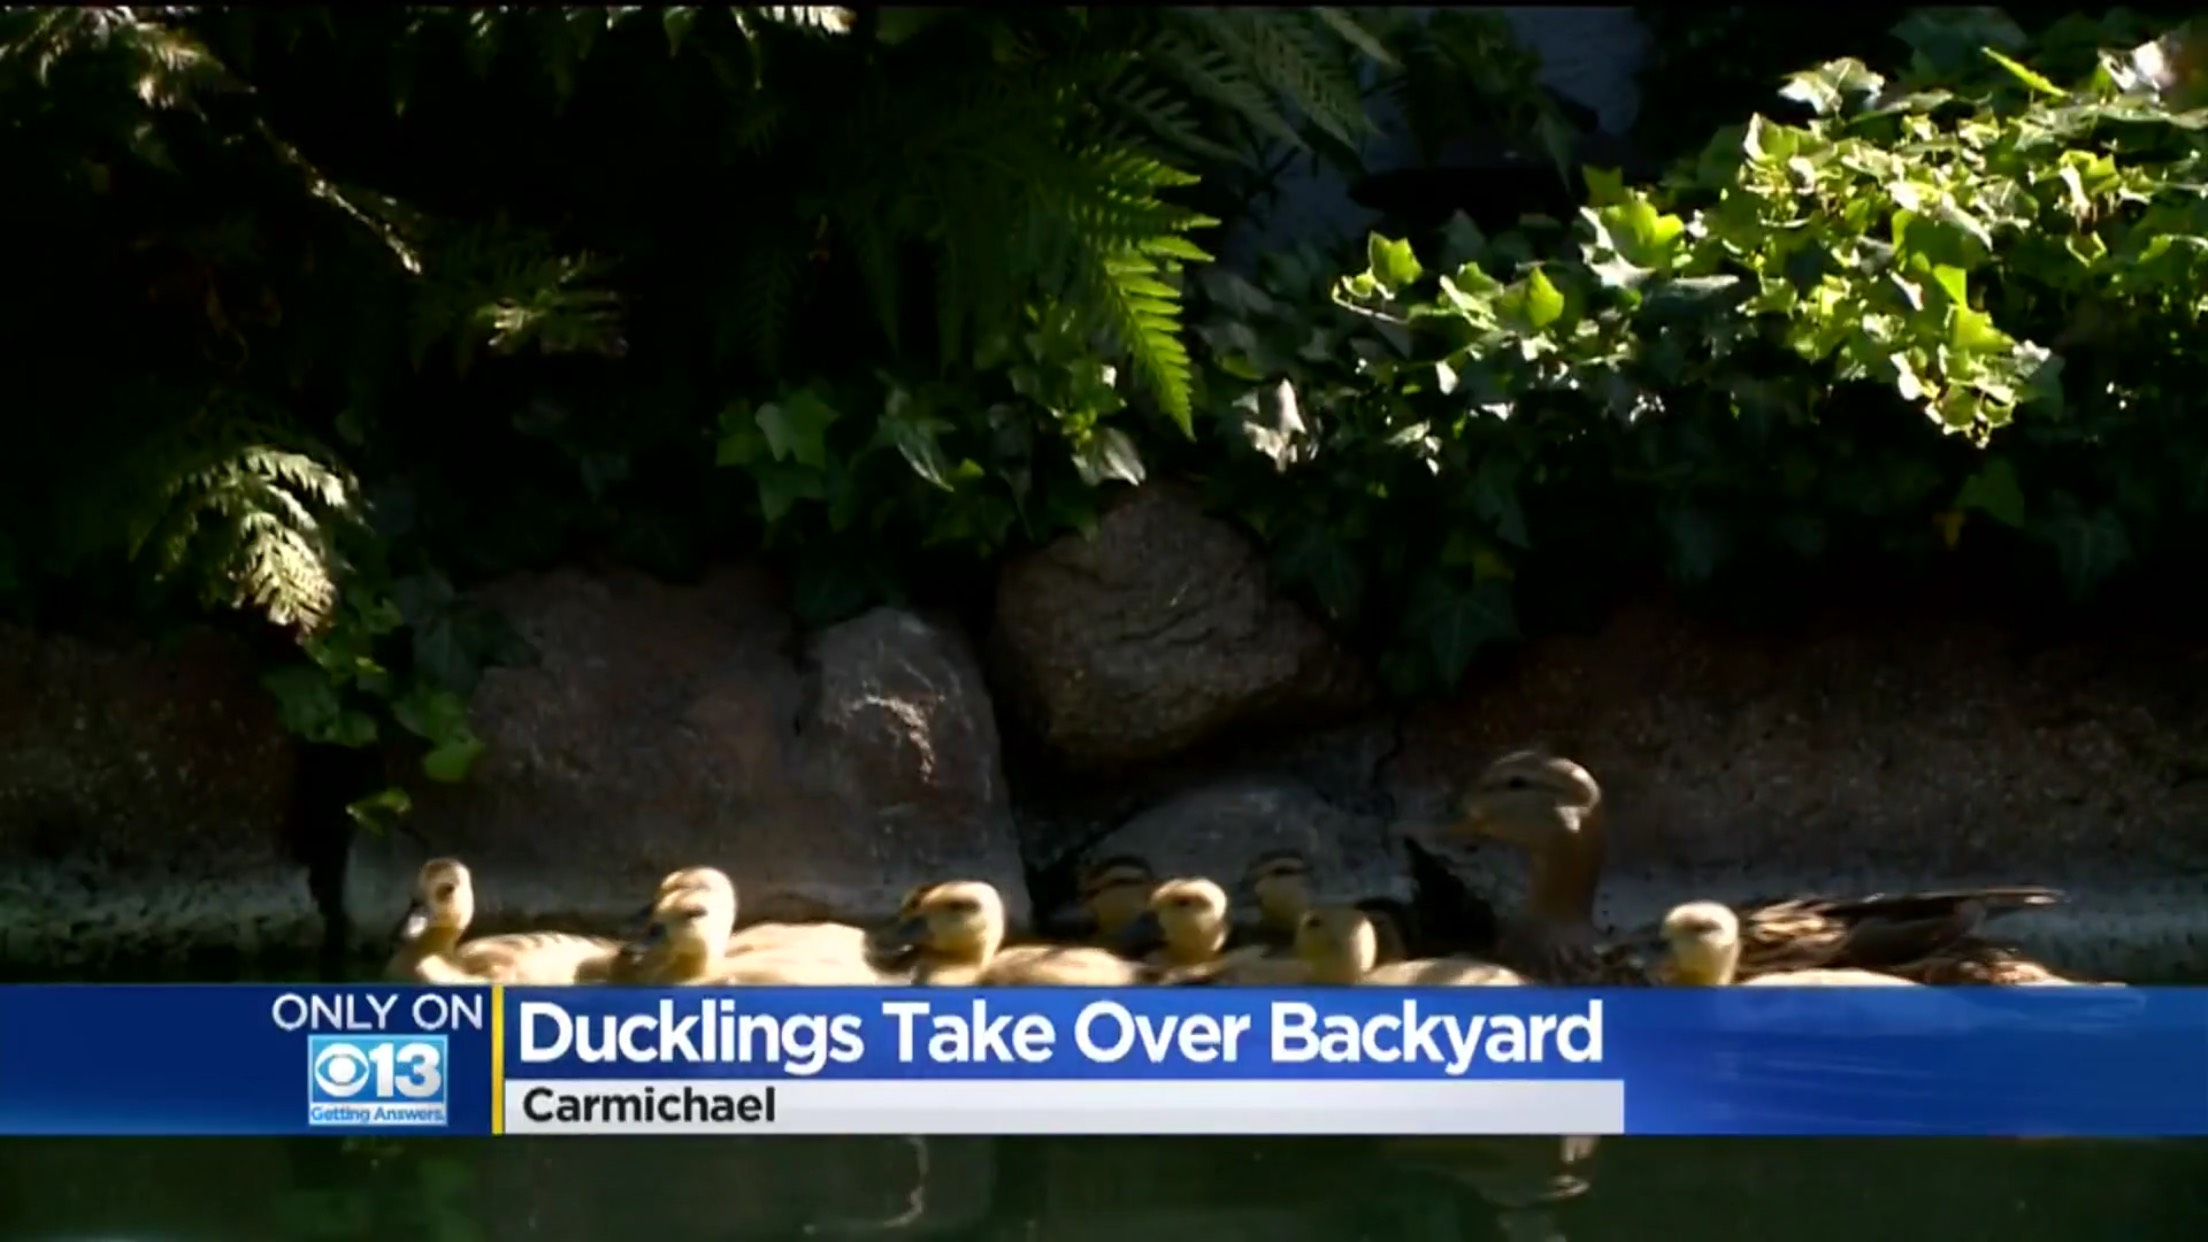 Ducklings Take Over Backyard